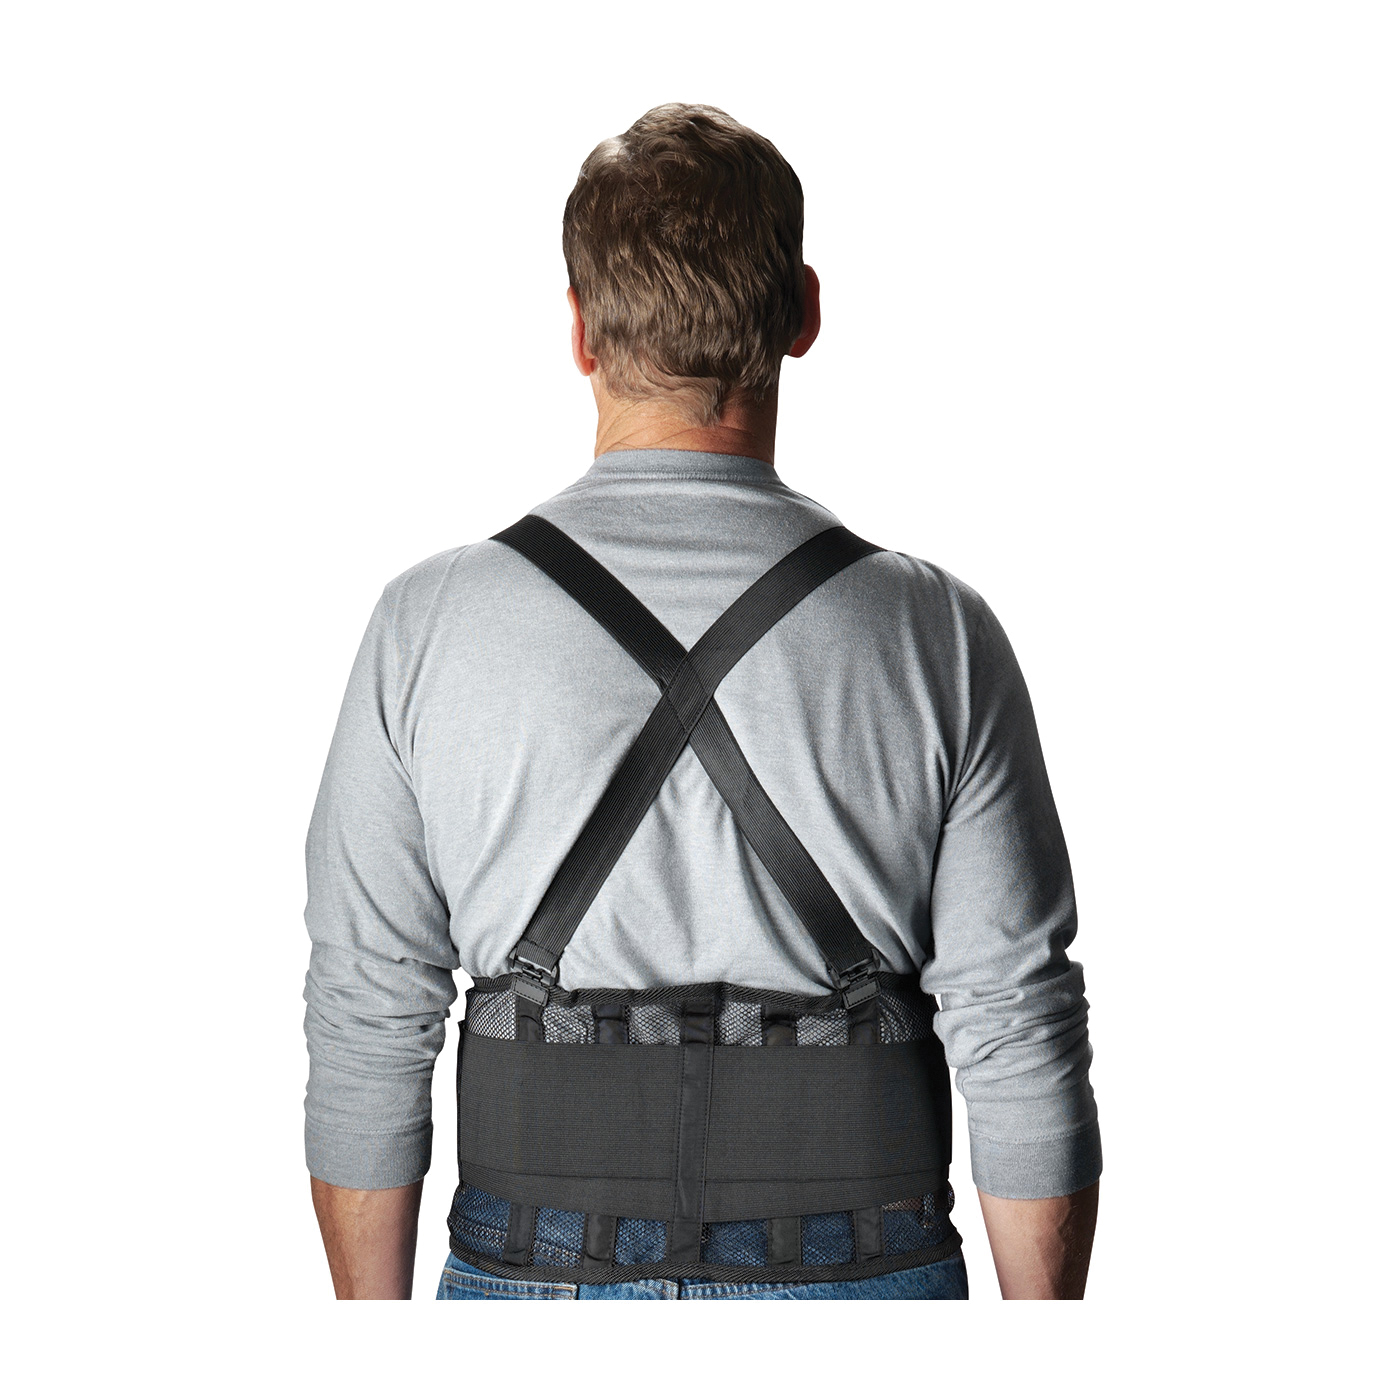 PIP® 290-440L Ergonomic Back Support Belt, L, 40 to 44 in Fits Waist, 9 in W, Nylon Mesh, Black, Hook and Loop Closure